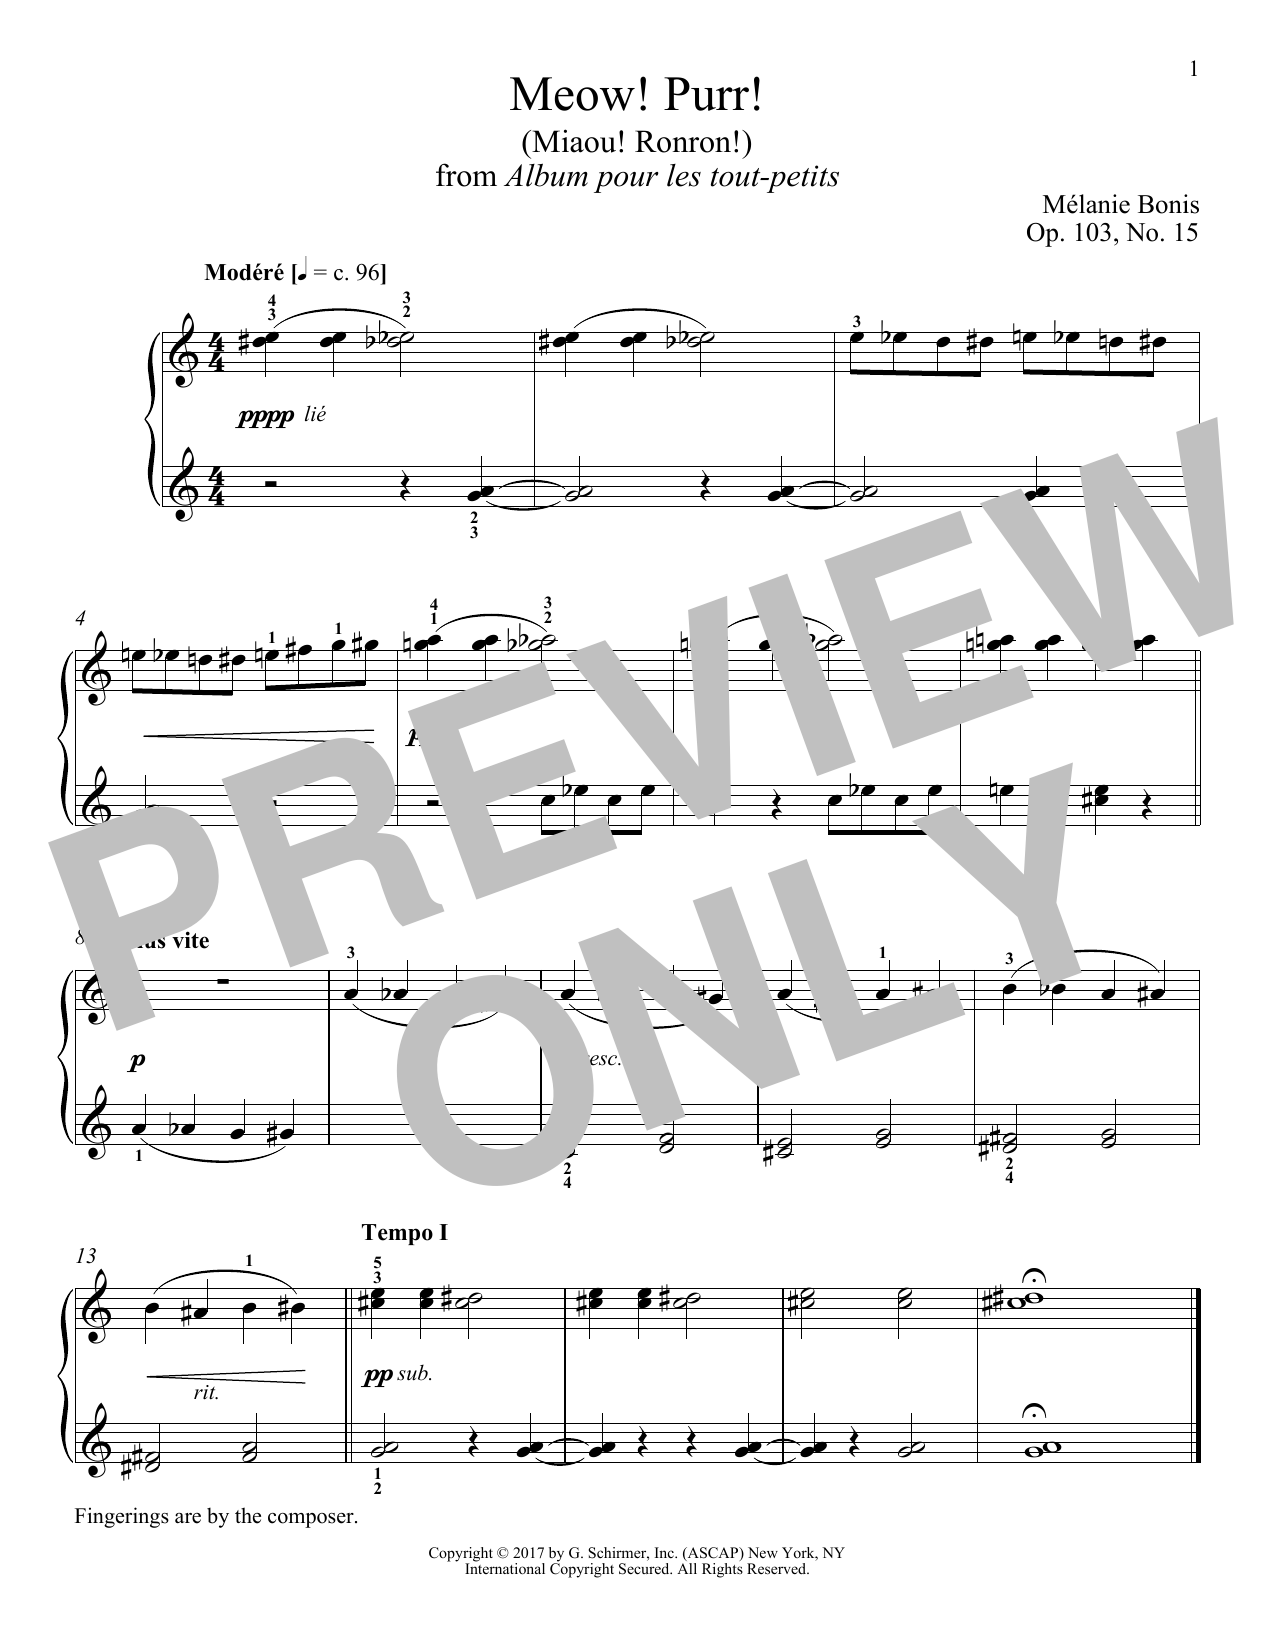 Melanie Bonis Meow! Purr! (Miaou! Ronron!) sheet music notes and chords